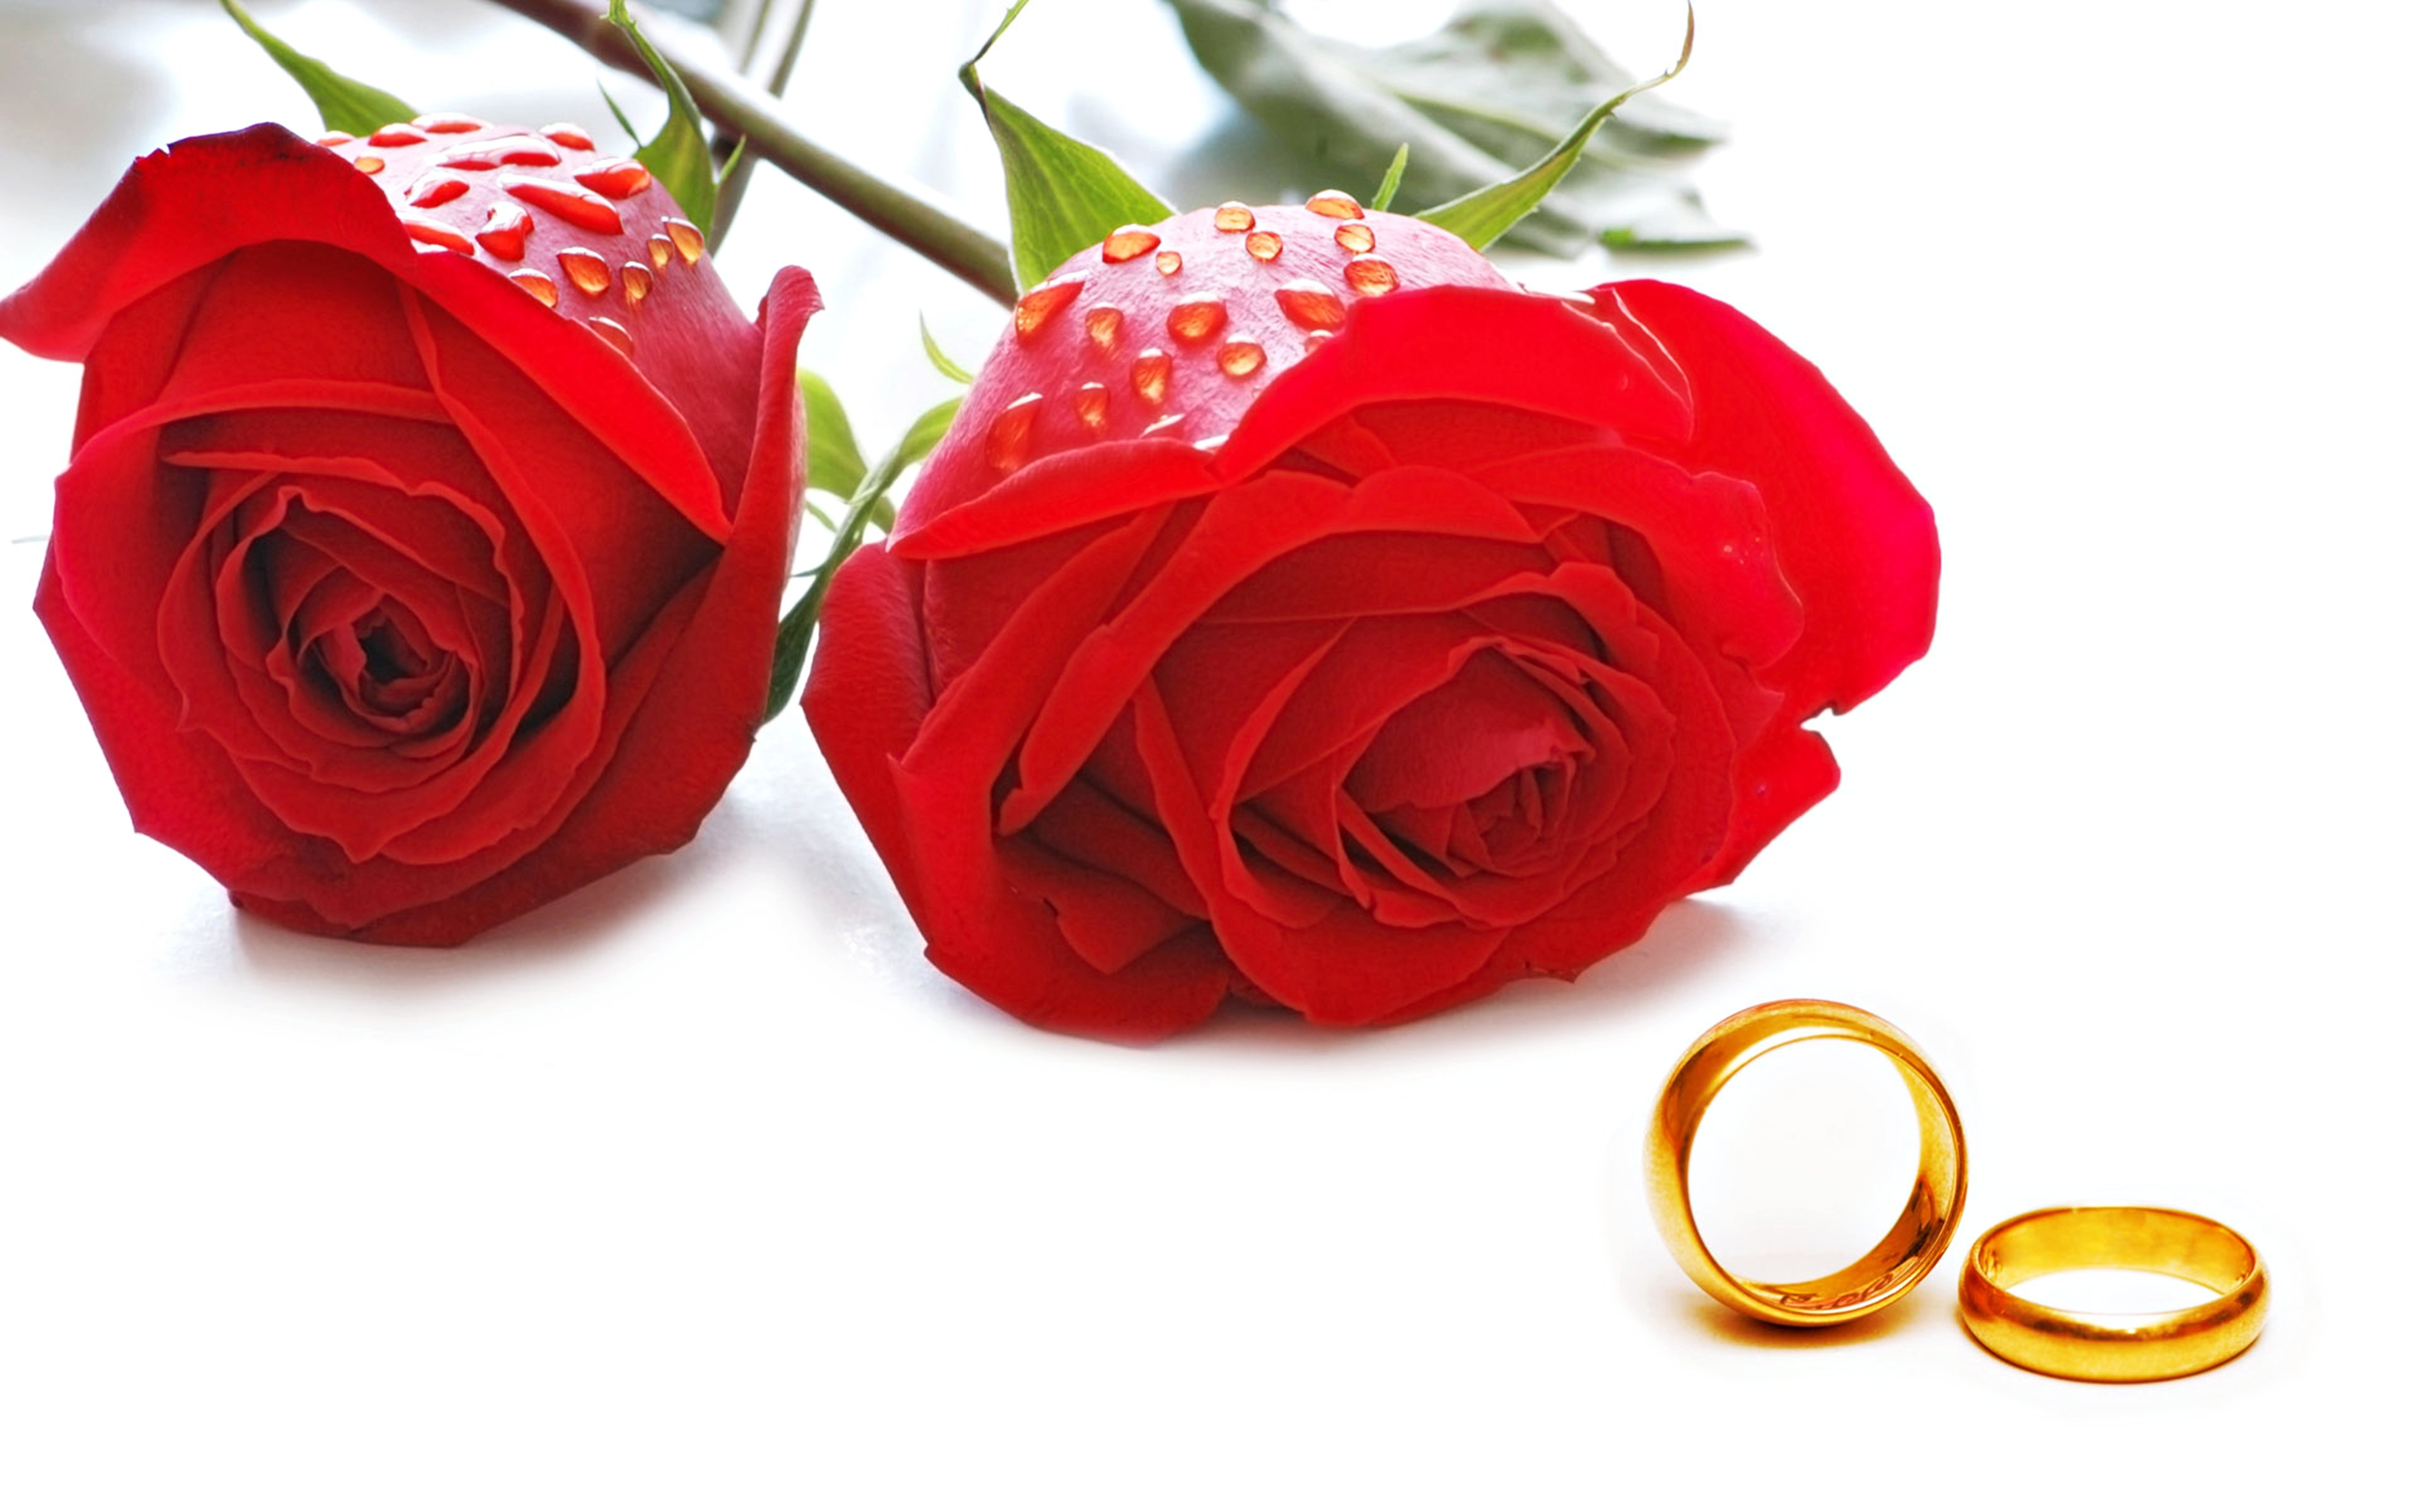 Flowers Roses Red Love Marriage Rings Engagement Golden E Wallpaper 3840x2400 621409 Wallpaperup